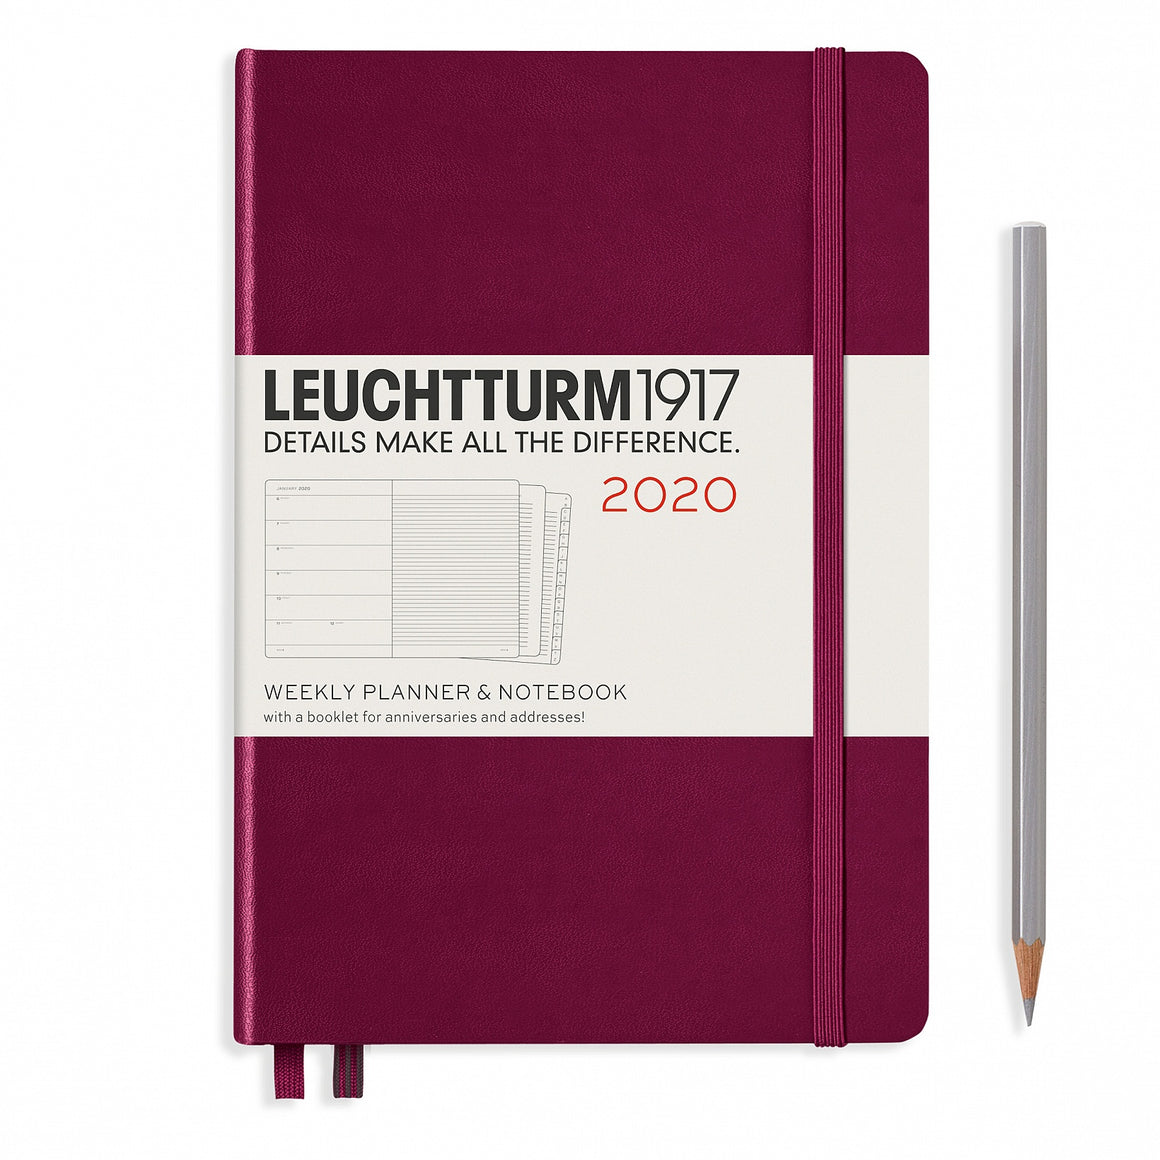 Weekly Planner + Notebook A5 (Medium)